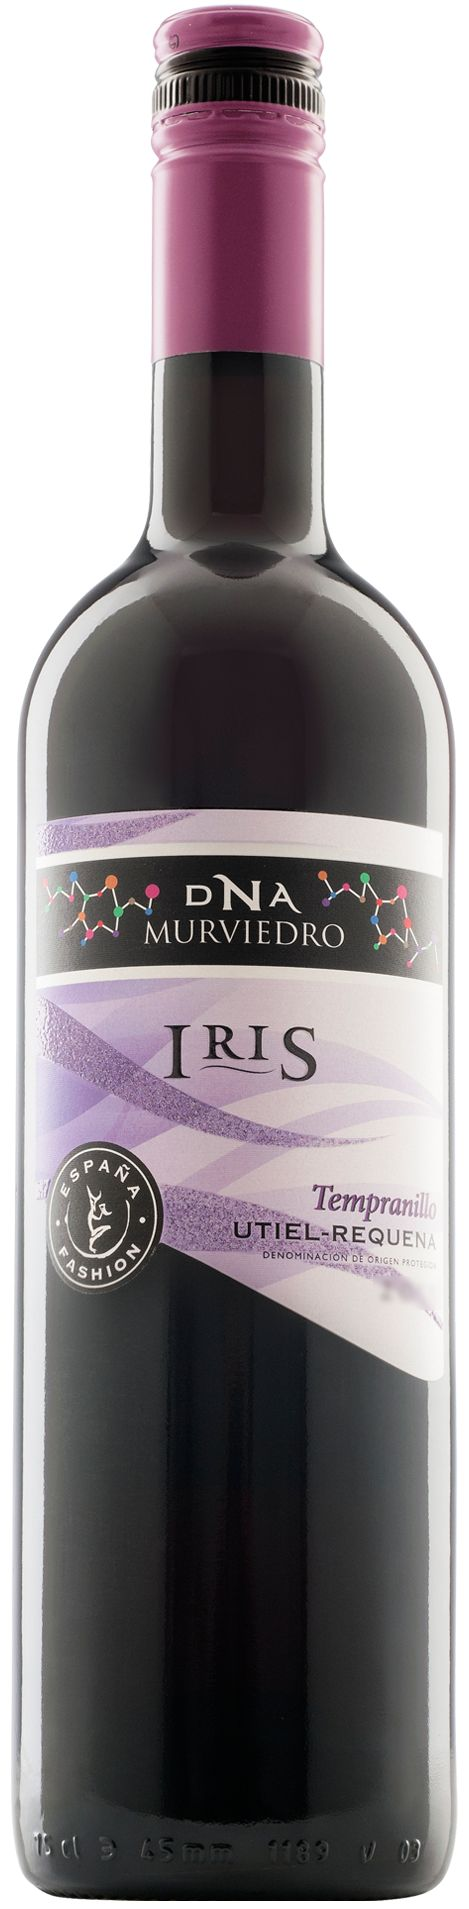 DNA Fashion Iris Tempranillo -  Nota de Cata   Color: De intensidad media, con un color rojo cereza brillante.   Aroma: Afrutado, de intensidad alta, con recuerdos a fruta roja, fresas, cerezas, etc.   Sabor. En boca es un vino lleno, ligeramente dulce, con mucho peso de fruta y taninos muy equilibrados y redondos.     Sugerencias de Servicio   DNA Fashion Iris es un vino tinto ideal como aperitivo, además de un buen acompañante de carnes rojas, pastas y arroces. Su temperatura ideal de…